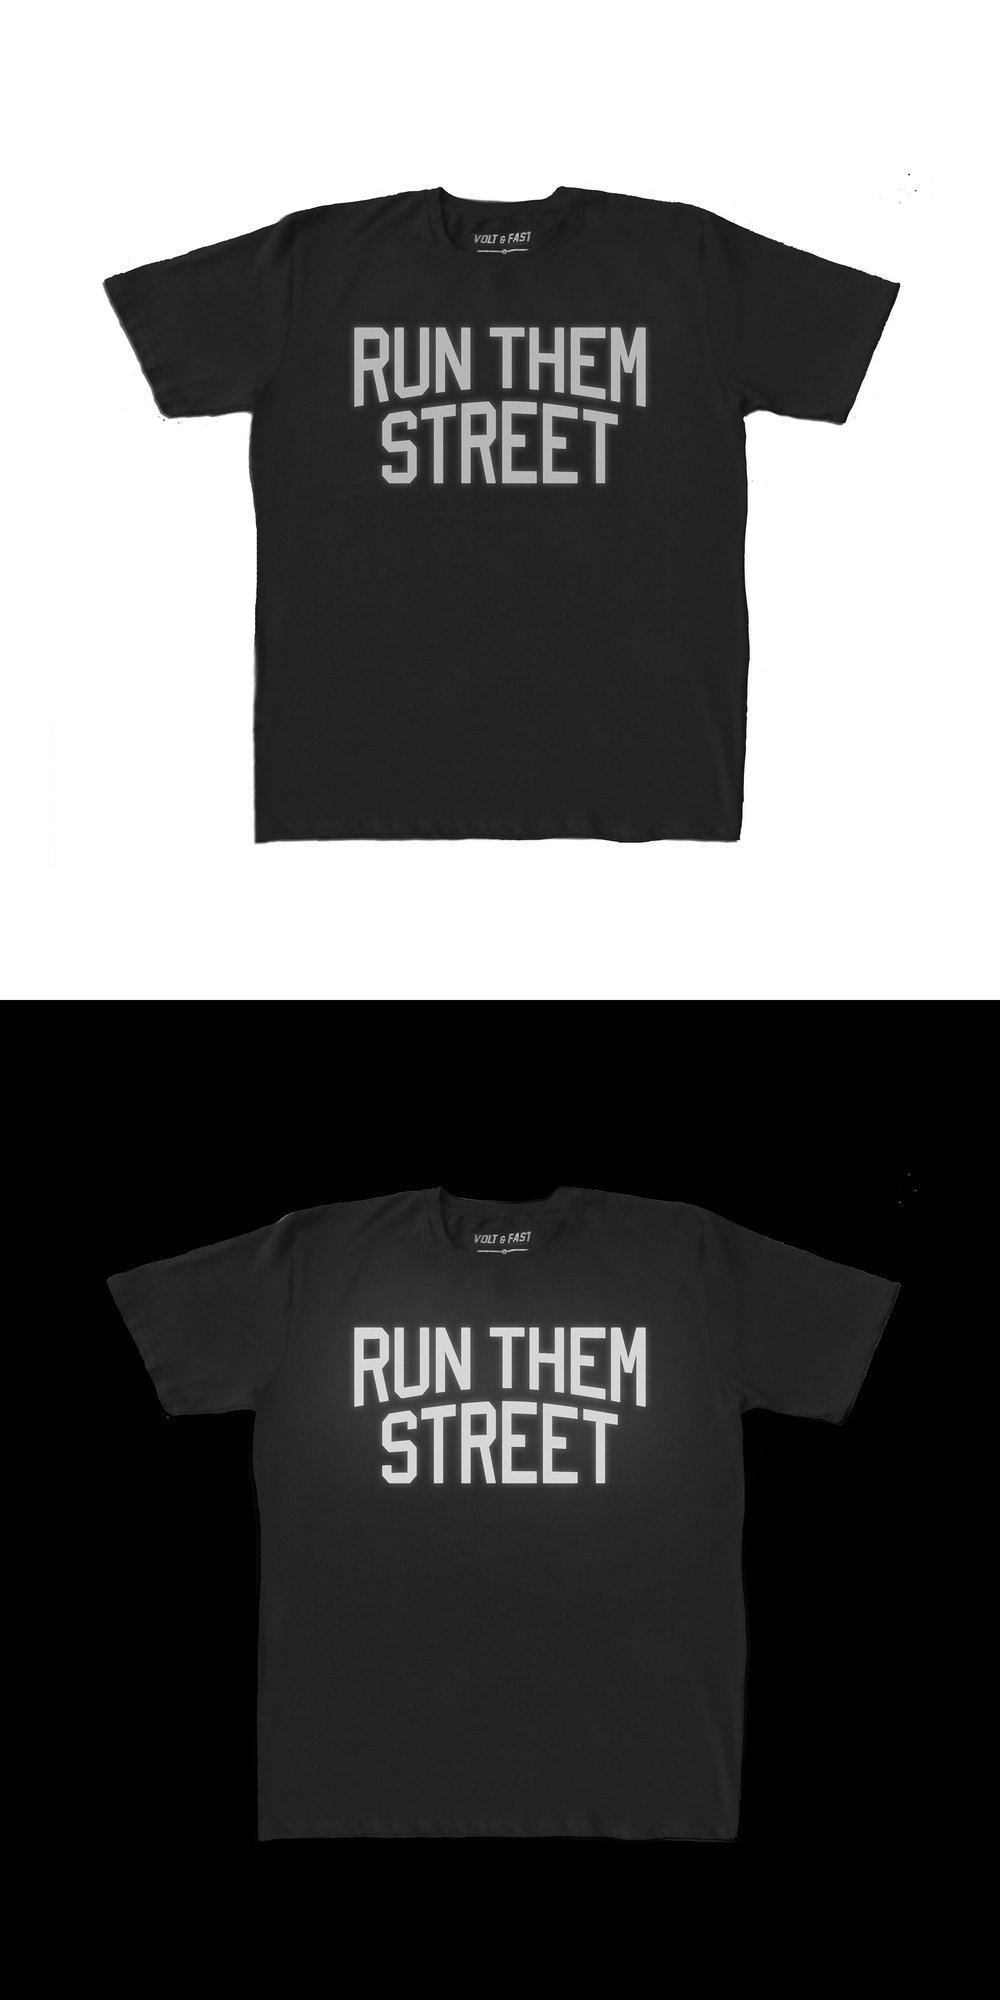 RUN THEM STREET   Never Not Running Collection  Features:  - Cotton spandex fabric - Printed with reflective ink - Reflective label - Regular fit  Rp 250.000